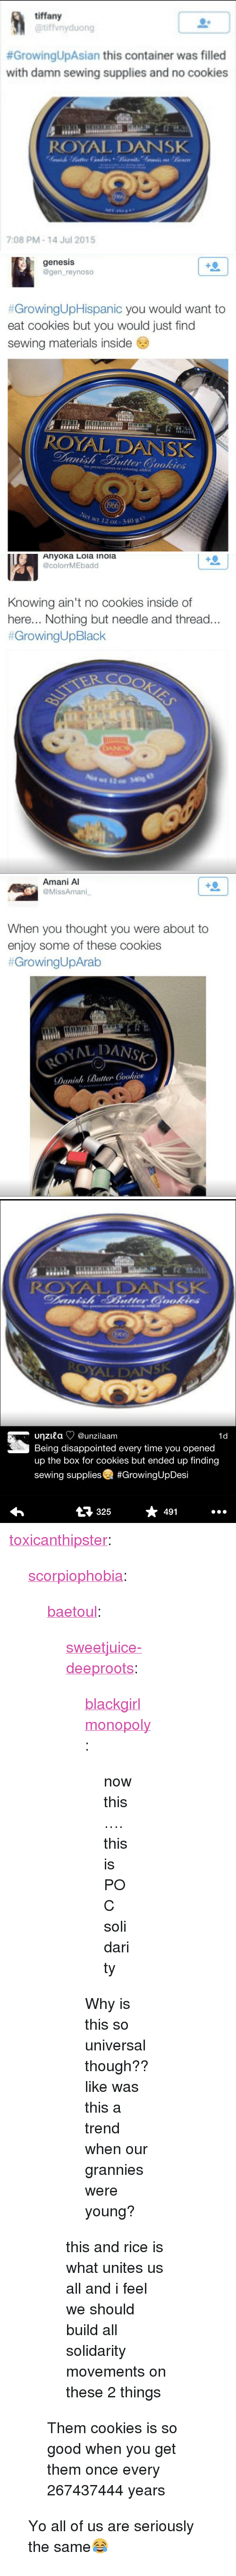 """Disappointed: tiffany  @tiffvnyduong  #GrowingUpAsian this container was filled  with damn sewing supplies and no cookies  ROYAL DANSK  7:08 PM-14 Jul 2015   genesis  @gen_reynoso  #GrowingUpHispanic you would want to  eat cookies but you would just find  sewing materials inside  EOE  ROYAL DANSK  No preservatives or coloring addled  et wt 12 oz-3  40 9   Ahyoka Lola Inola  @colorrMEbadd  Knowing ain't no cookies inside of  here... Nothing but needle and thread.  #GrowingUpBlack  TER COO   Amani A  @MissAmani  When you thought you were about to  enjoy some of these cookies  #GrowingUpArab  ALDANSK  り(1 ninh (Butter (ookie8   ROYAL DANSK  unzitaƠ @unzilaam  Being disappointed every time you opened  up the box for cookies but ended up finding  sewing supplies #GrowingUpDesi  1d  325  491 <p><a class=""""tumblr_blog"""" href=""""http://toxicanthipster.tumblr.com/post/128773514989"""" target=""""_blank"""">toxicanthipster</a>:</p> <blockquote> <p><a class=""""tumblr_blog"""" href=""""http://scorpiophobia.tumblr.com/post/128769850861"""" target=""""_blank"""">scorpiophobia</a>:</p> <blockquote> <p><a class=""""tumblr_blog"""" href=""""http://baetoul.tumblr.com/post/128688785650"""" target=""""_blank"""">baetoul</a>:</p> <blockquote> <p><a class=""""tumblr_blog"""" href=""""http://sweetjuice-deeproots.tumblr.com/post/128678064764"""" target=""""_blank"""">sweetjuice-deeproots</a>:</p> <blockquote> <p><a class=""""tumblr_blog"""" href=""""http://blackgirlmonopoly.tumblr.com/post/124279577935"""" target=""""_blank"""">blackgirlmonopoly</a>:</p> <blockquote> <p>now this…. this is POC solidarity</p> </blockquote> <p>Why is this so universal though??</p> <p>like was this a trend when our grannies were young?</p> </blockquote> <p>this and rice is what unites us all and i feel we should build all solidarity movements on these 2 things </p> </blockquote> <p>Them cookies is so good when you get them once every 267437444 years</p> </blockquote> <p>Yo all of us are seriously the same😂</p> </blockquote>"""